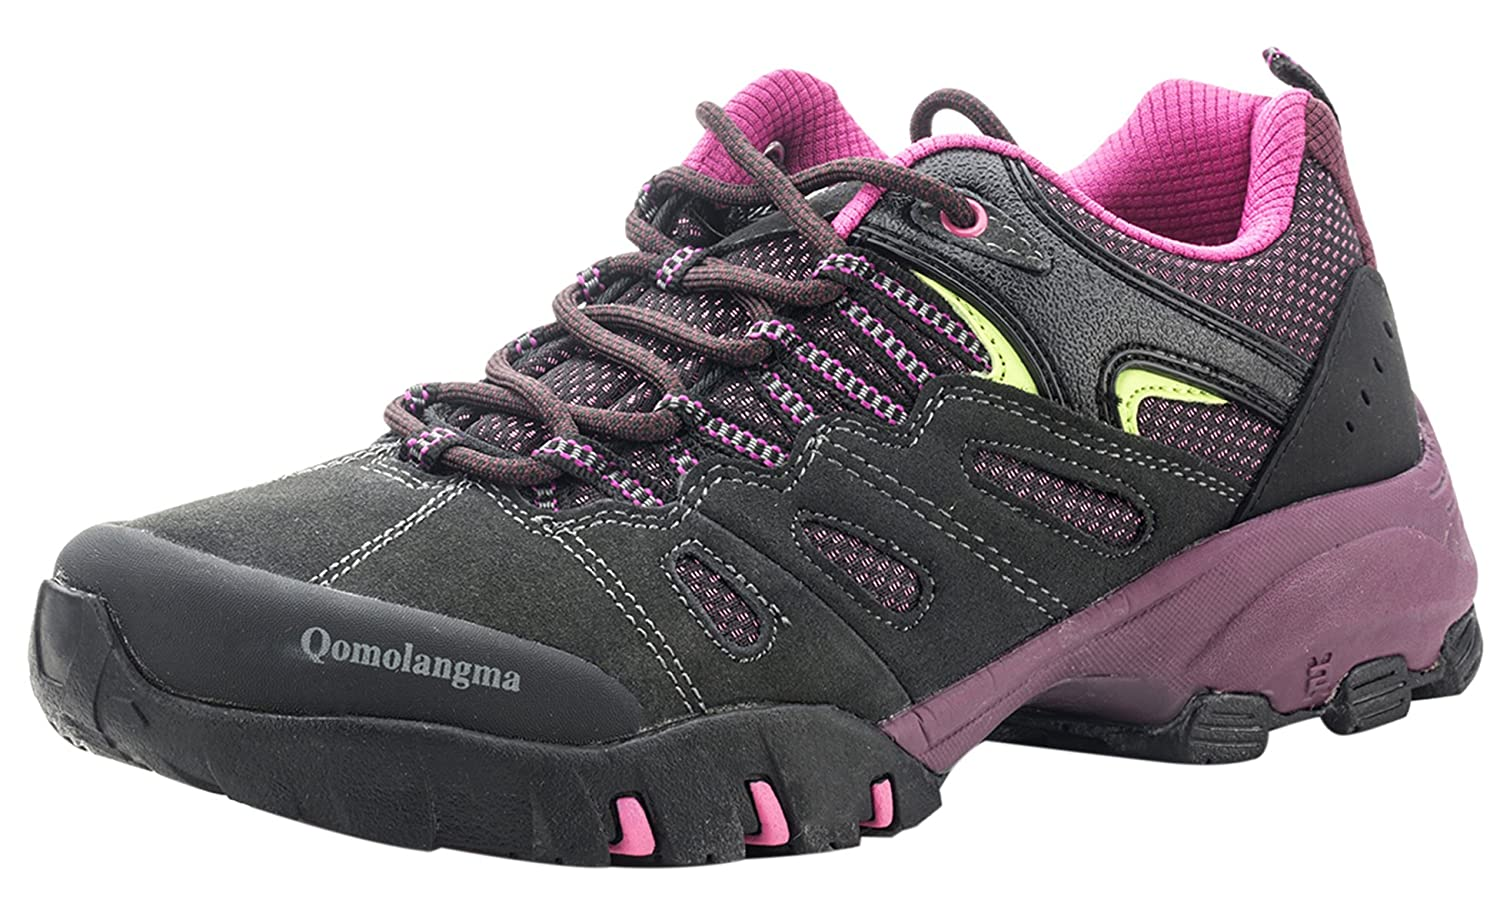 QOMOLANGMA Women's Suede Slip-Resistant Hiking Shoes Walking Sneakers Outdoor Trail Trekking Shoes B01HI55ZH2 8 - 8.5 B(M) US|Grey/Purple